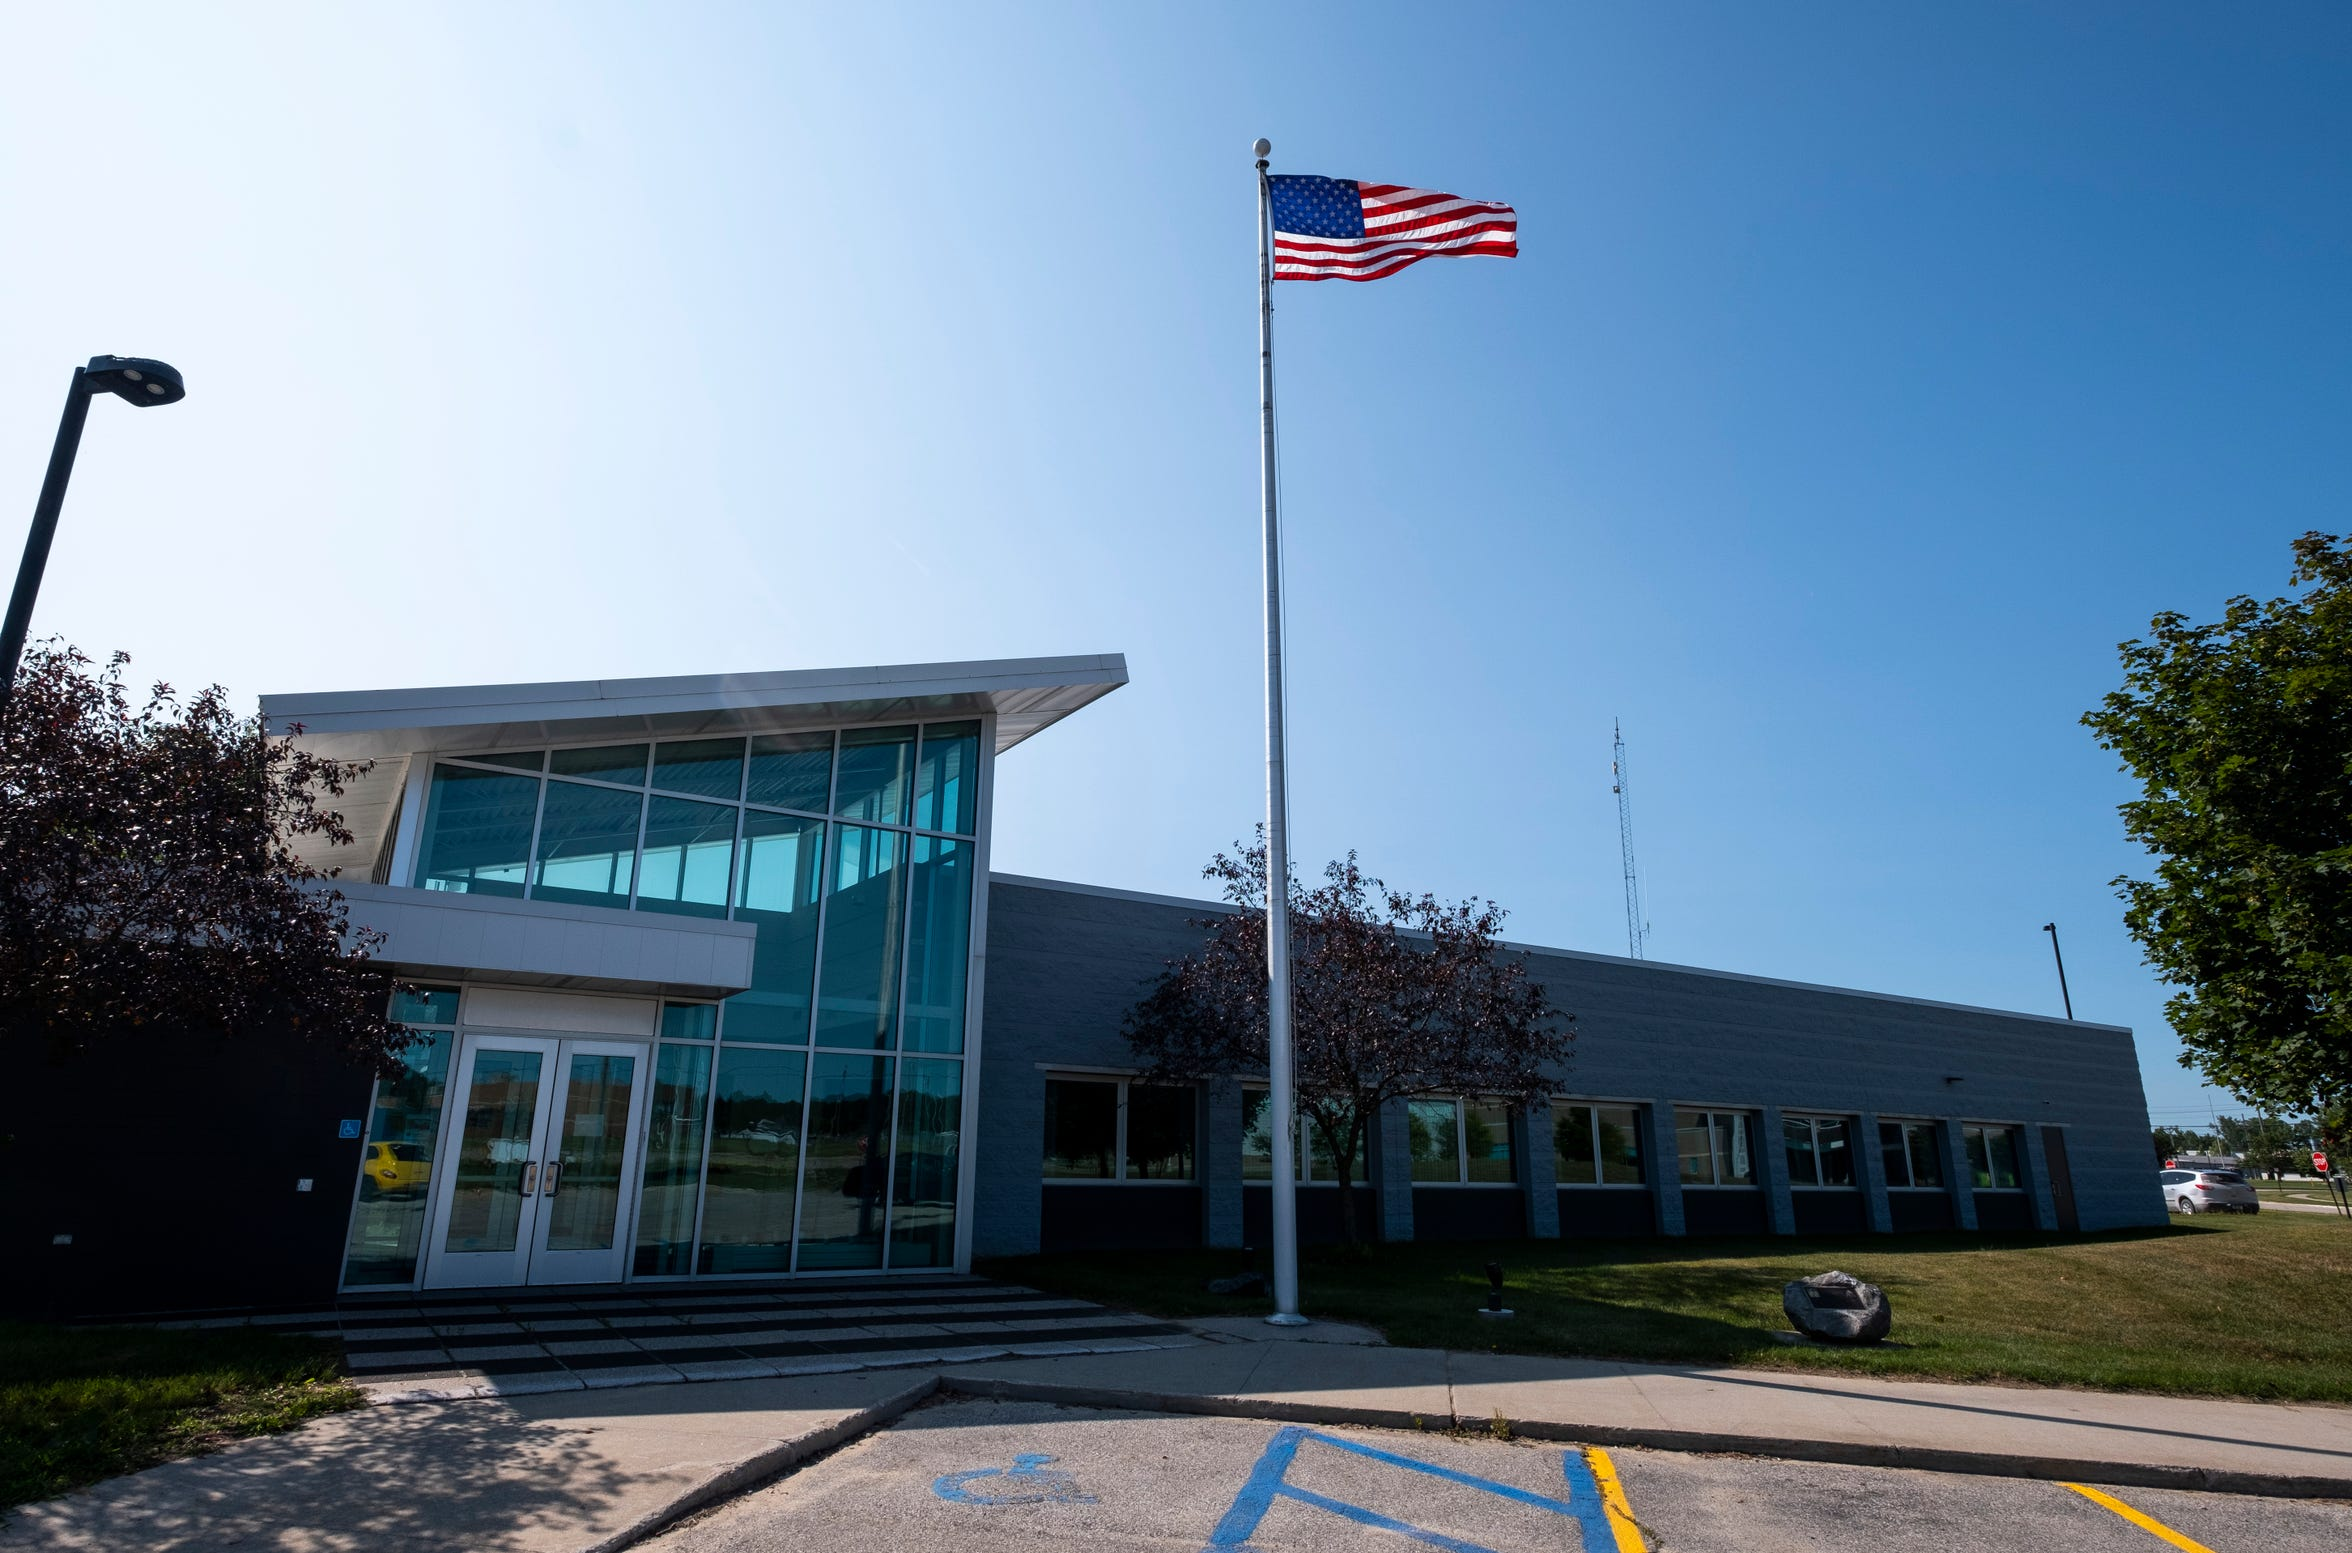 The Marysville fire and police departments moved into the public safety building in 1998.